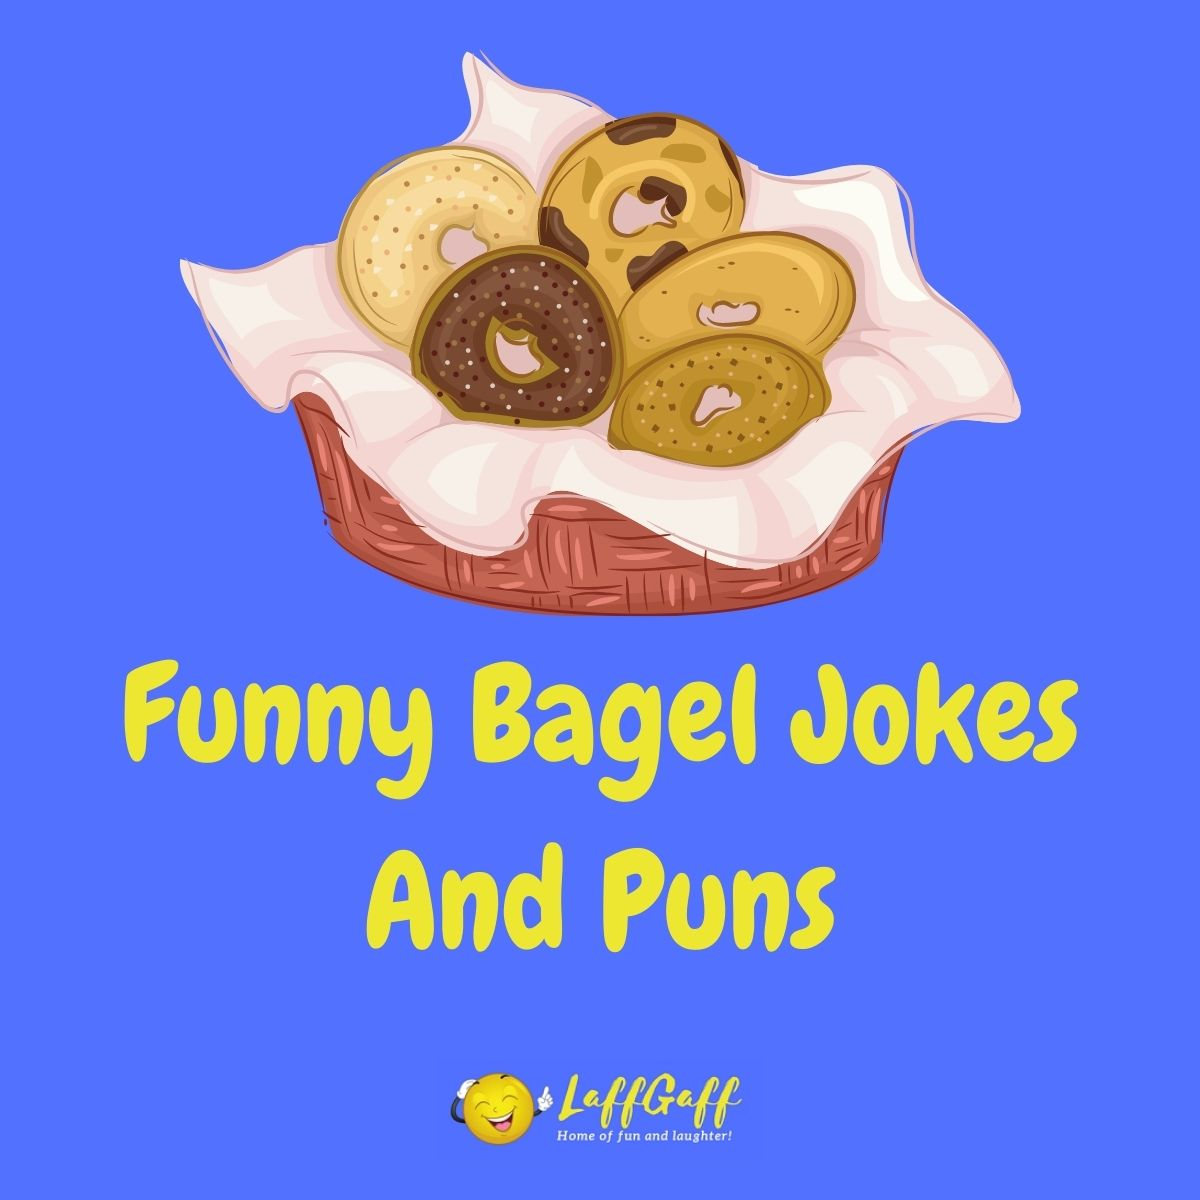 Featured image for a page of funny bagel jokes and puns.